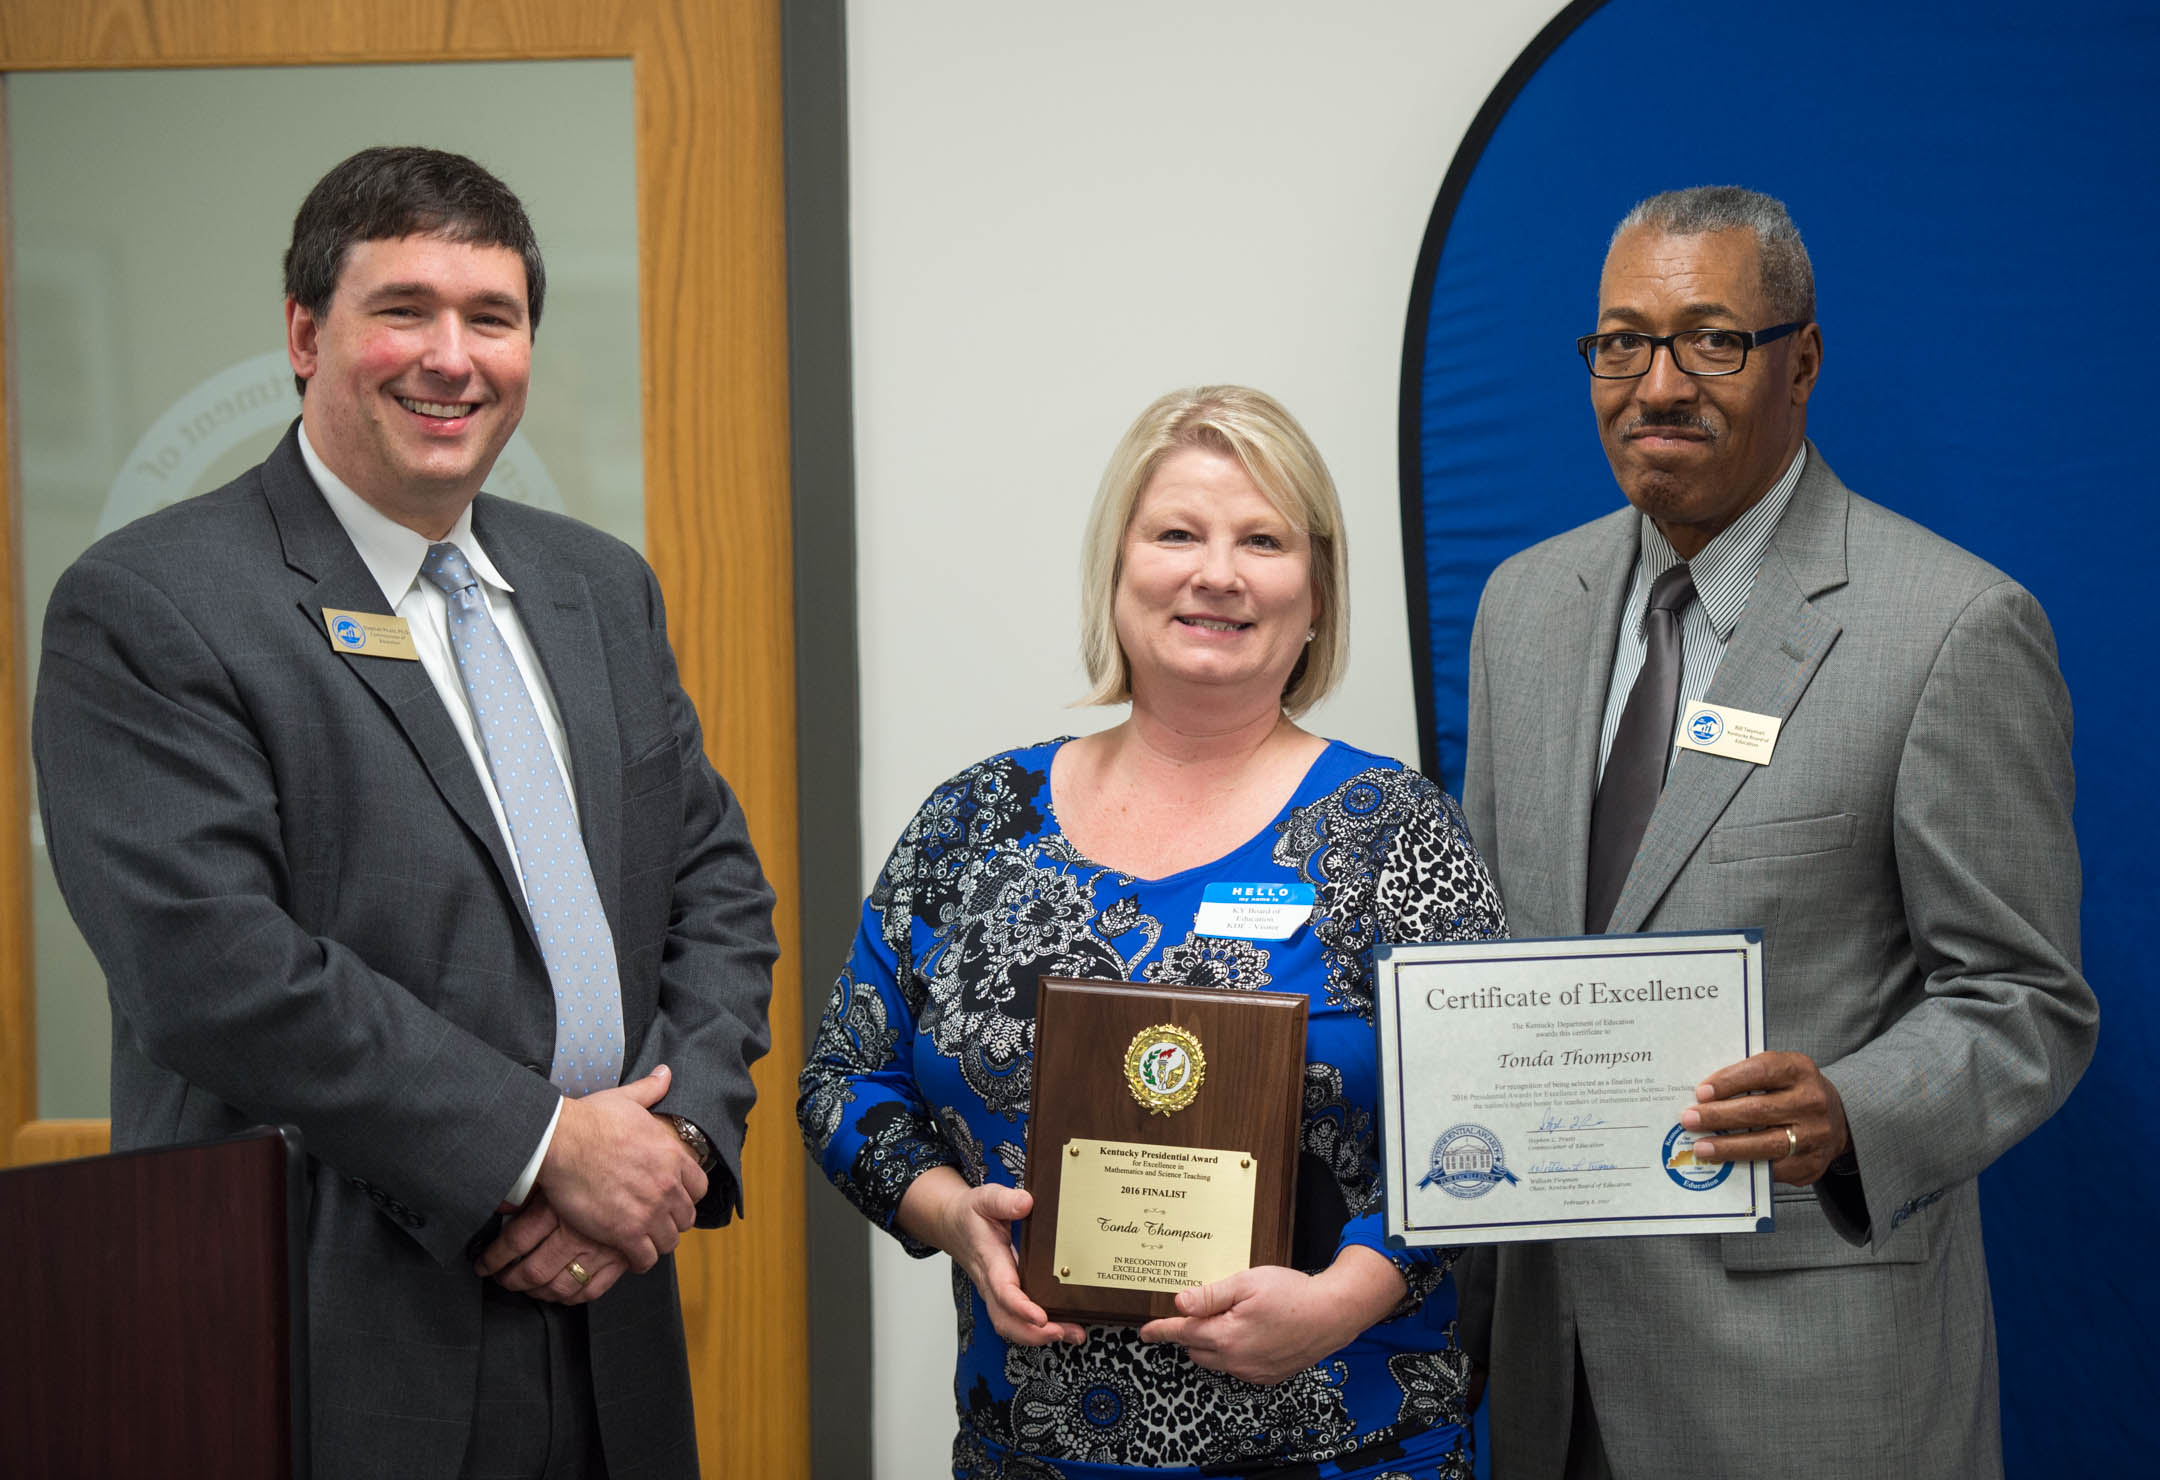 Albany Elementary School Math Recovery teacher Tonda Thompson was recognized as a nominee for the 2016 Kentucky Presidential Awards for Excellence in Math and Science Teaching at the February 8th Kentucky Board of Education Meeting.